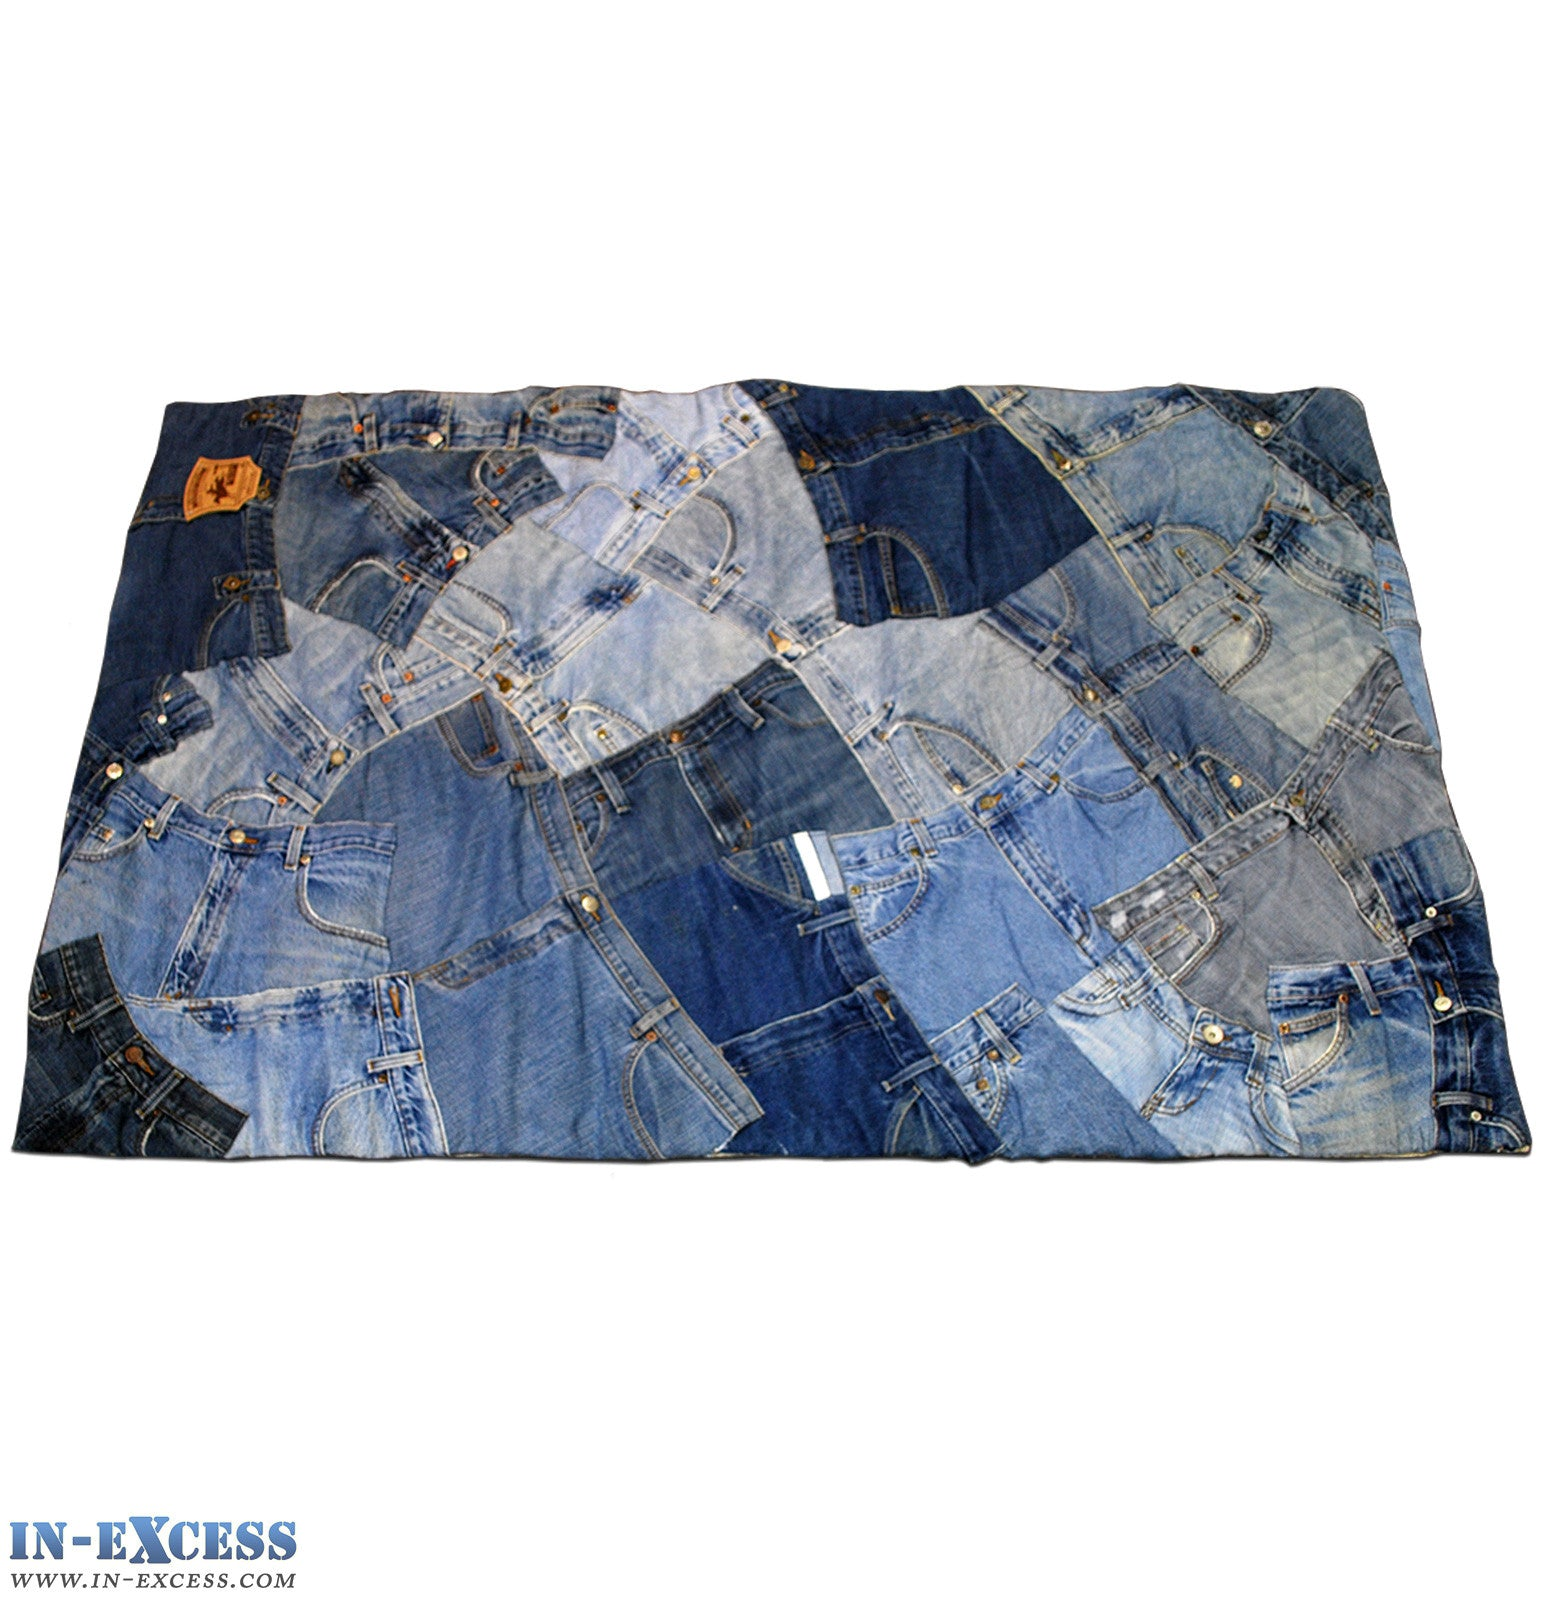 Hand Sewn Recycled Jeans Denim Patchwork Rug